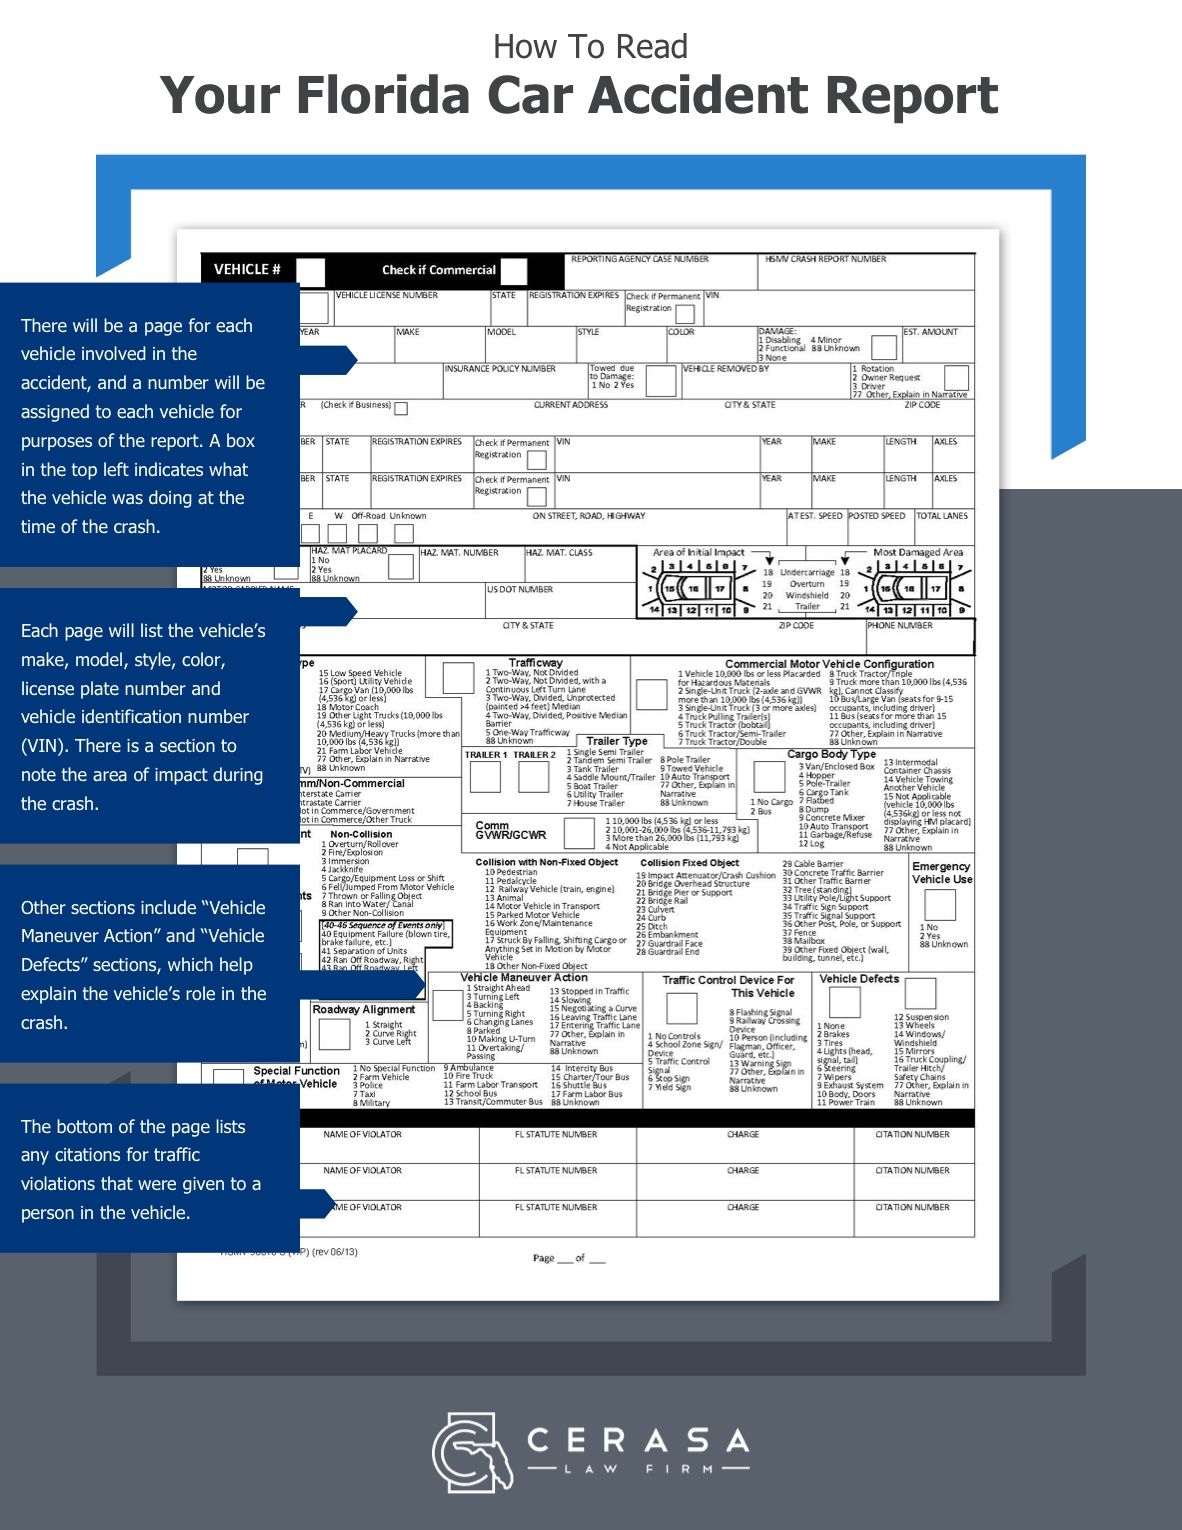 How To Read Your Accident Report page 4